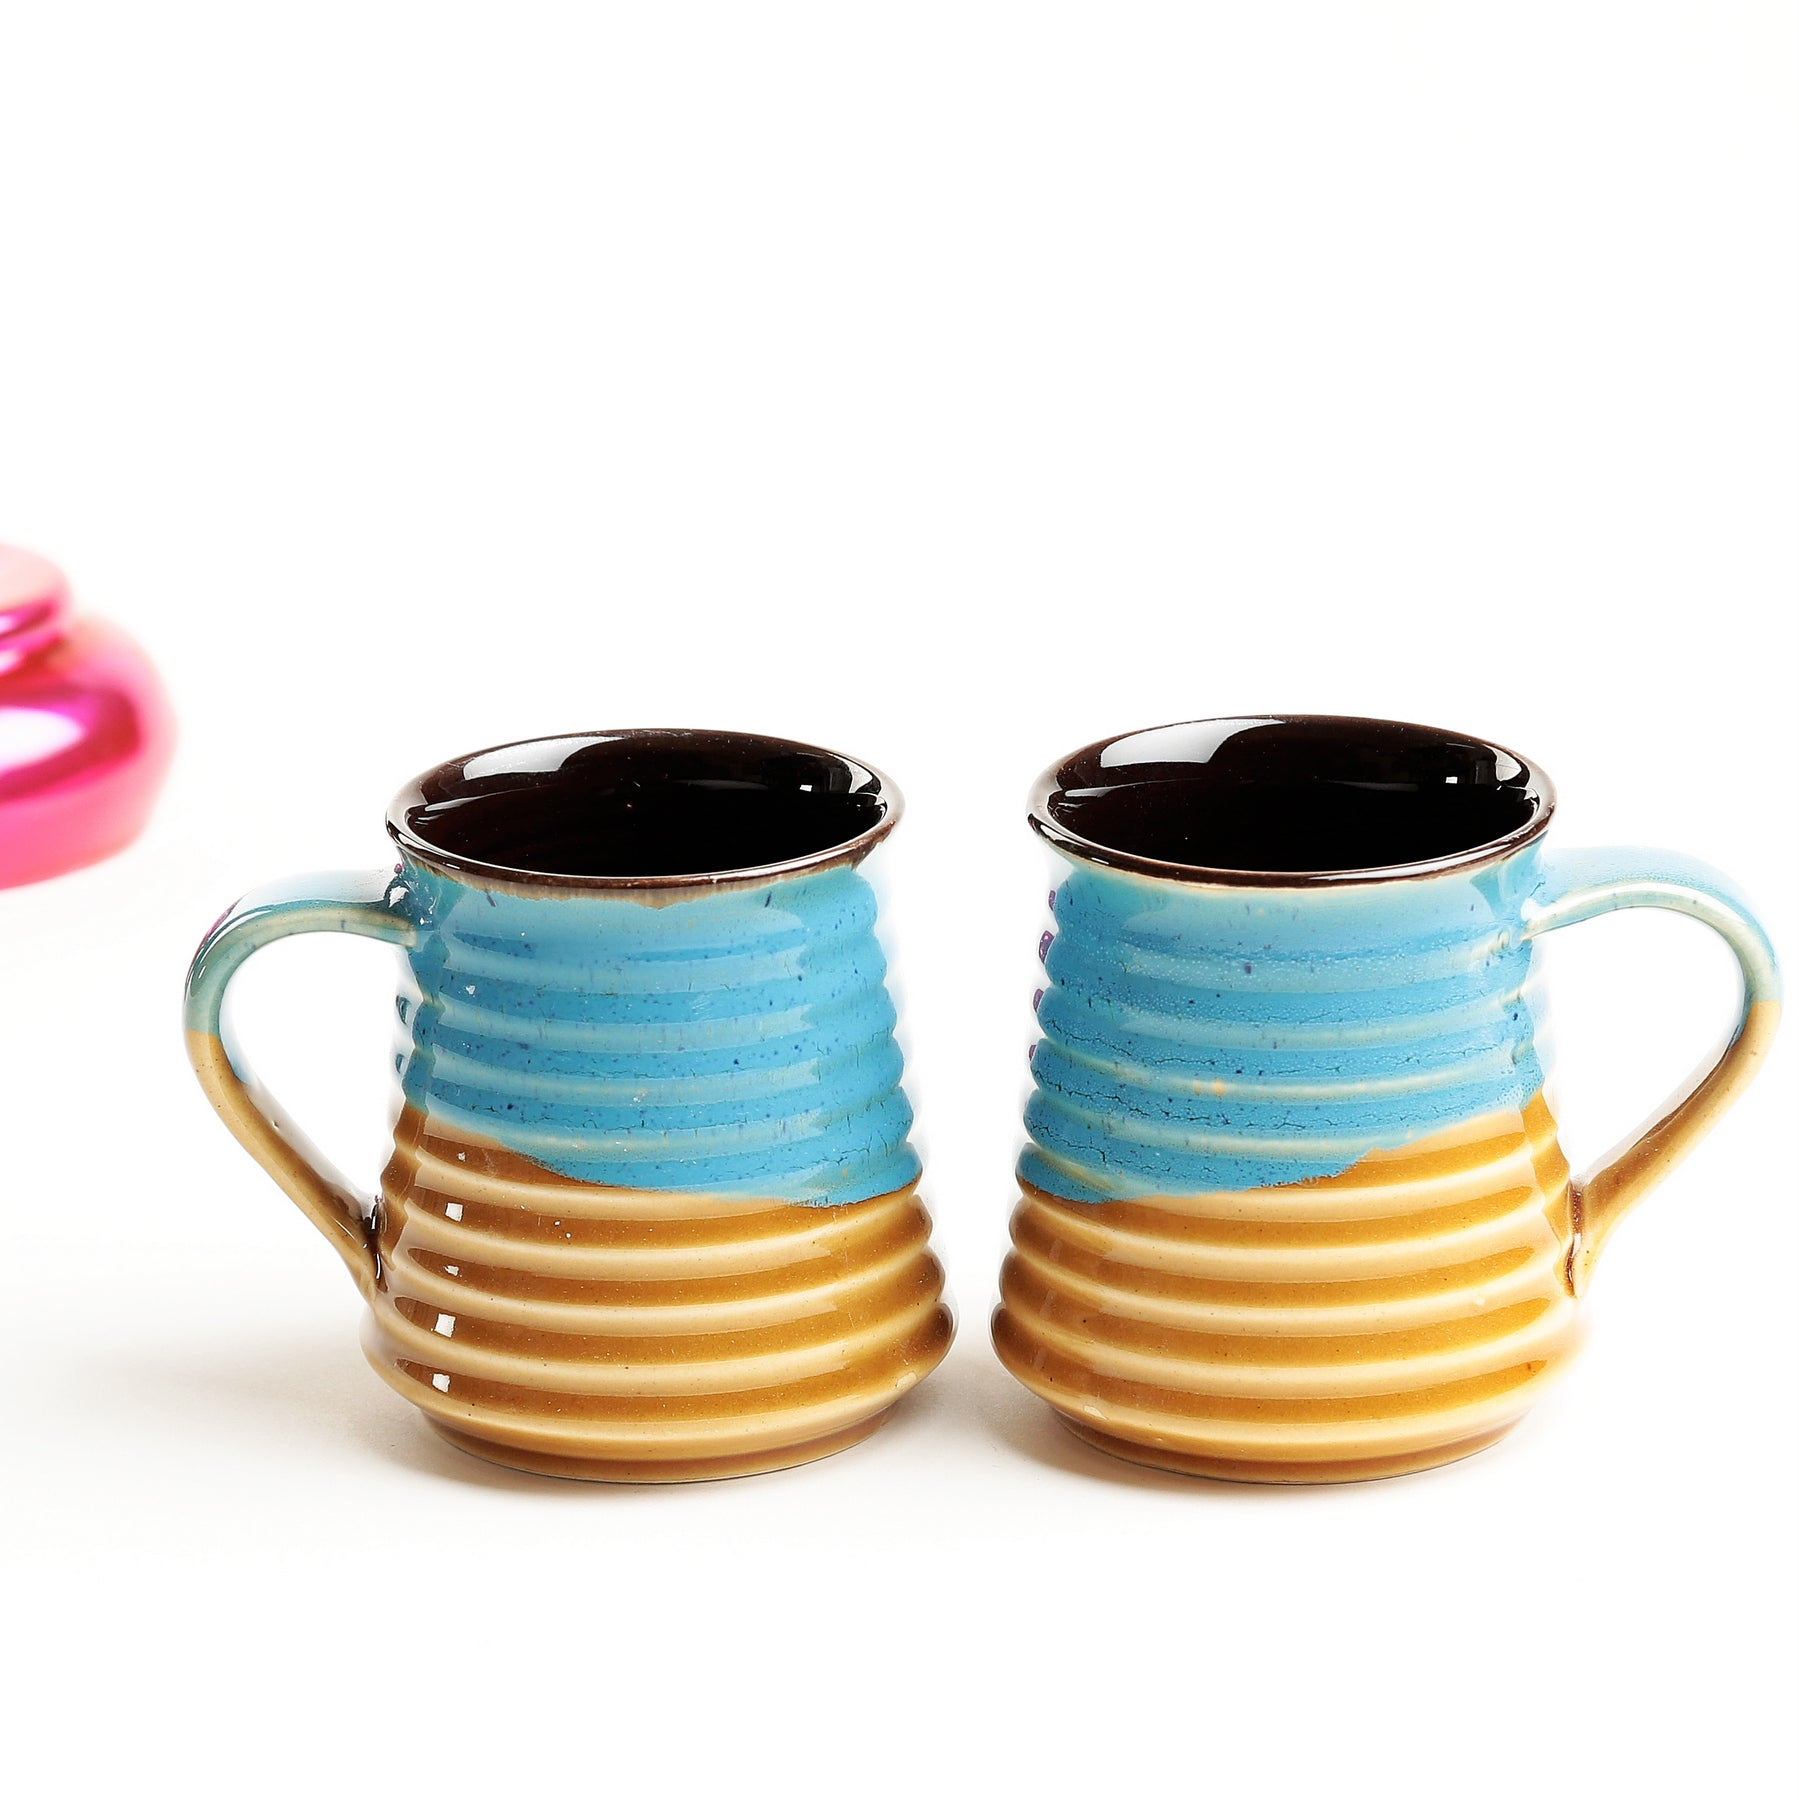 Teal and Yellow Studio Torryn Coffee Mugs - Set of 2